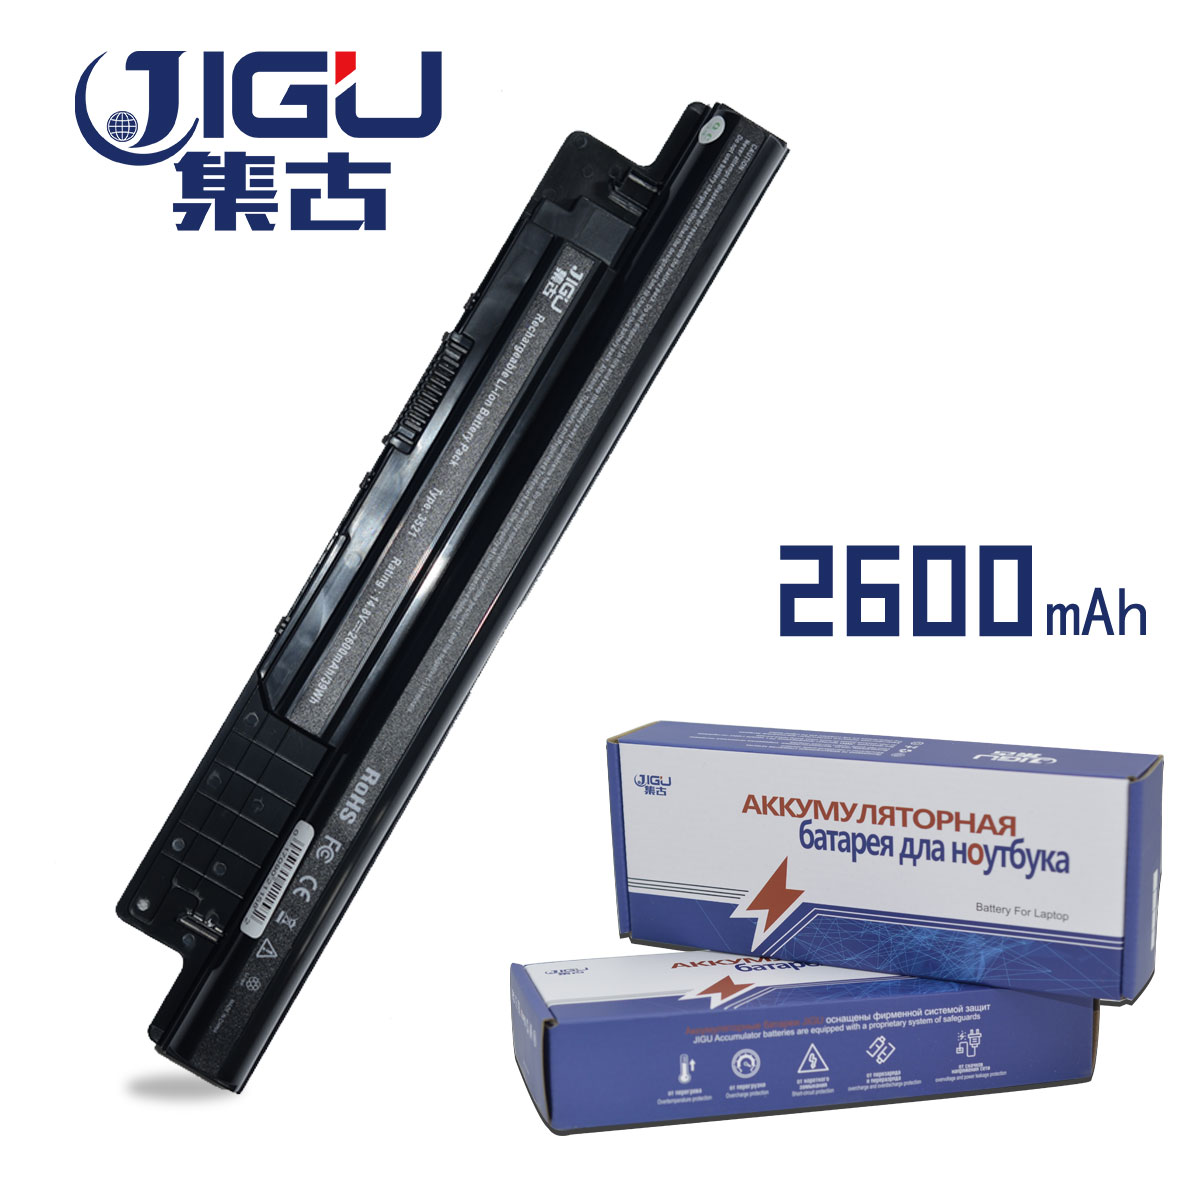 JIGU Laptop Battery For Dell 6K73M N121Y For Inspiron 3521 N3521 Series 3531 RP1F7 XCMRD YGMTN For Latitude 3440 3540 E3440 цена